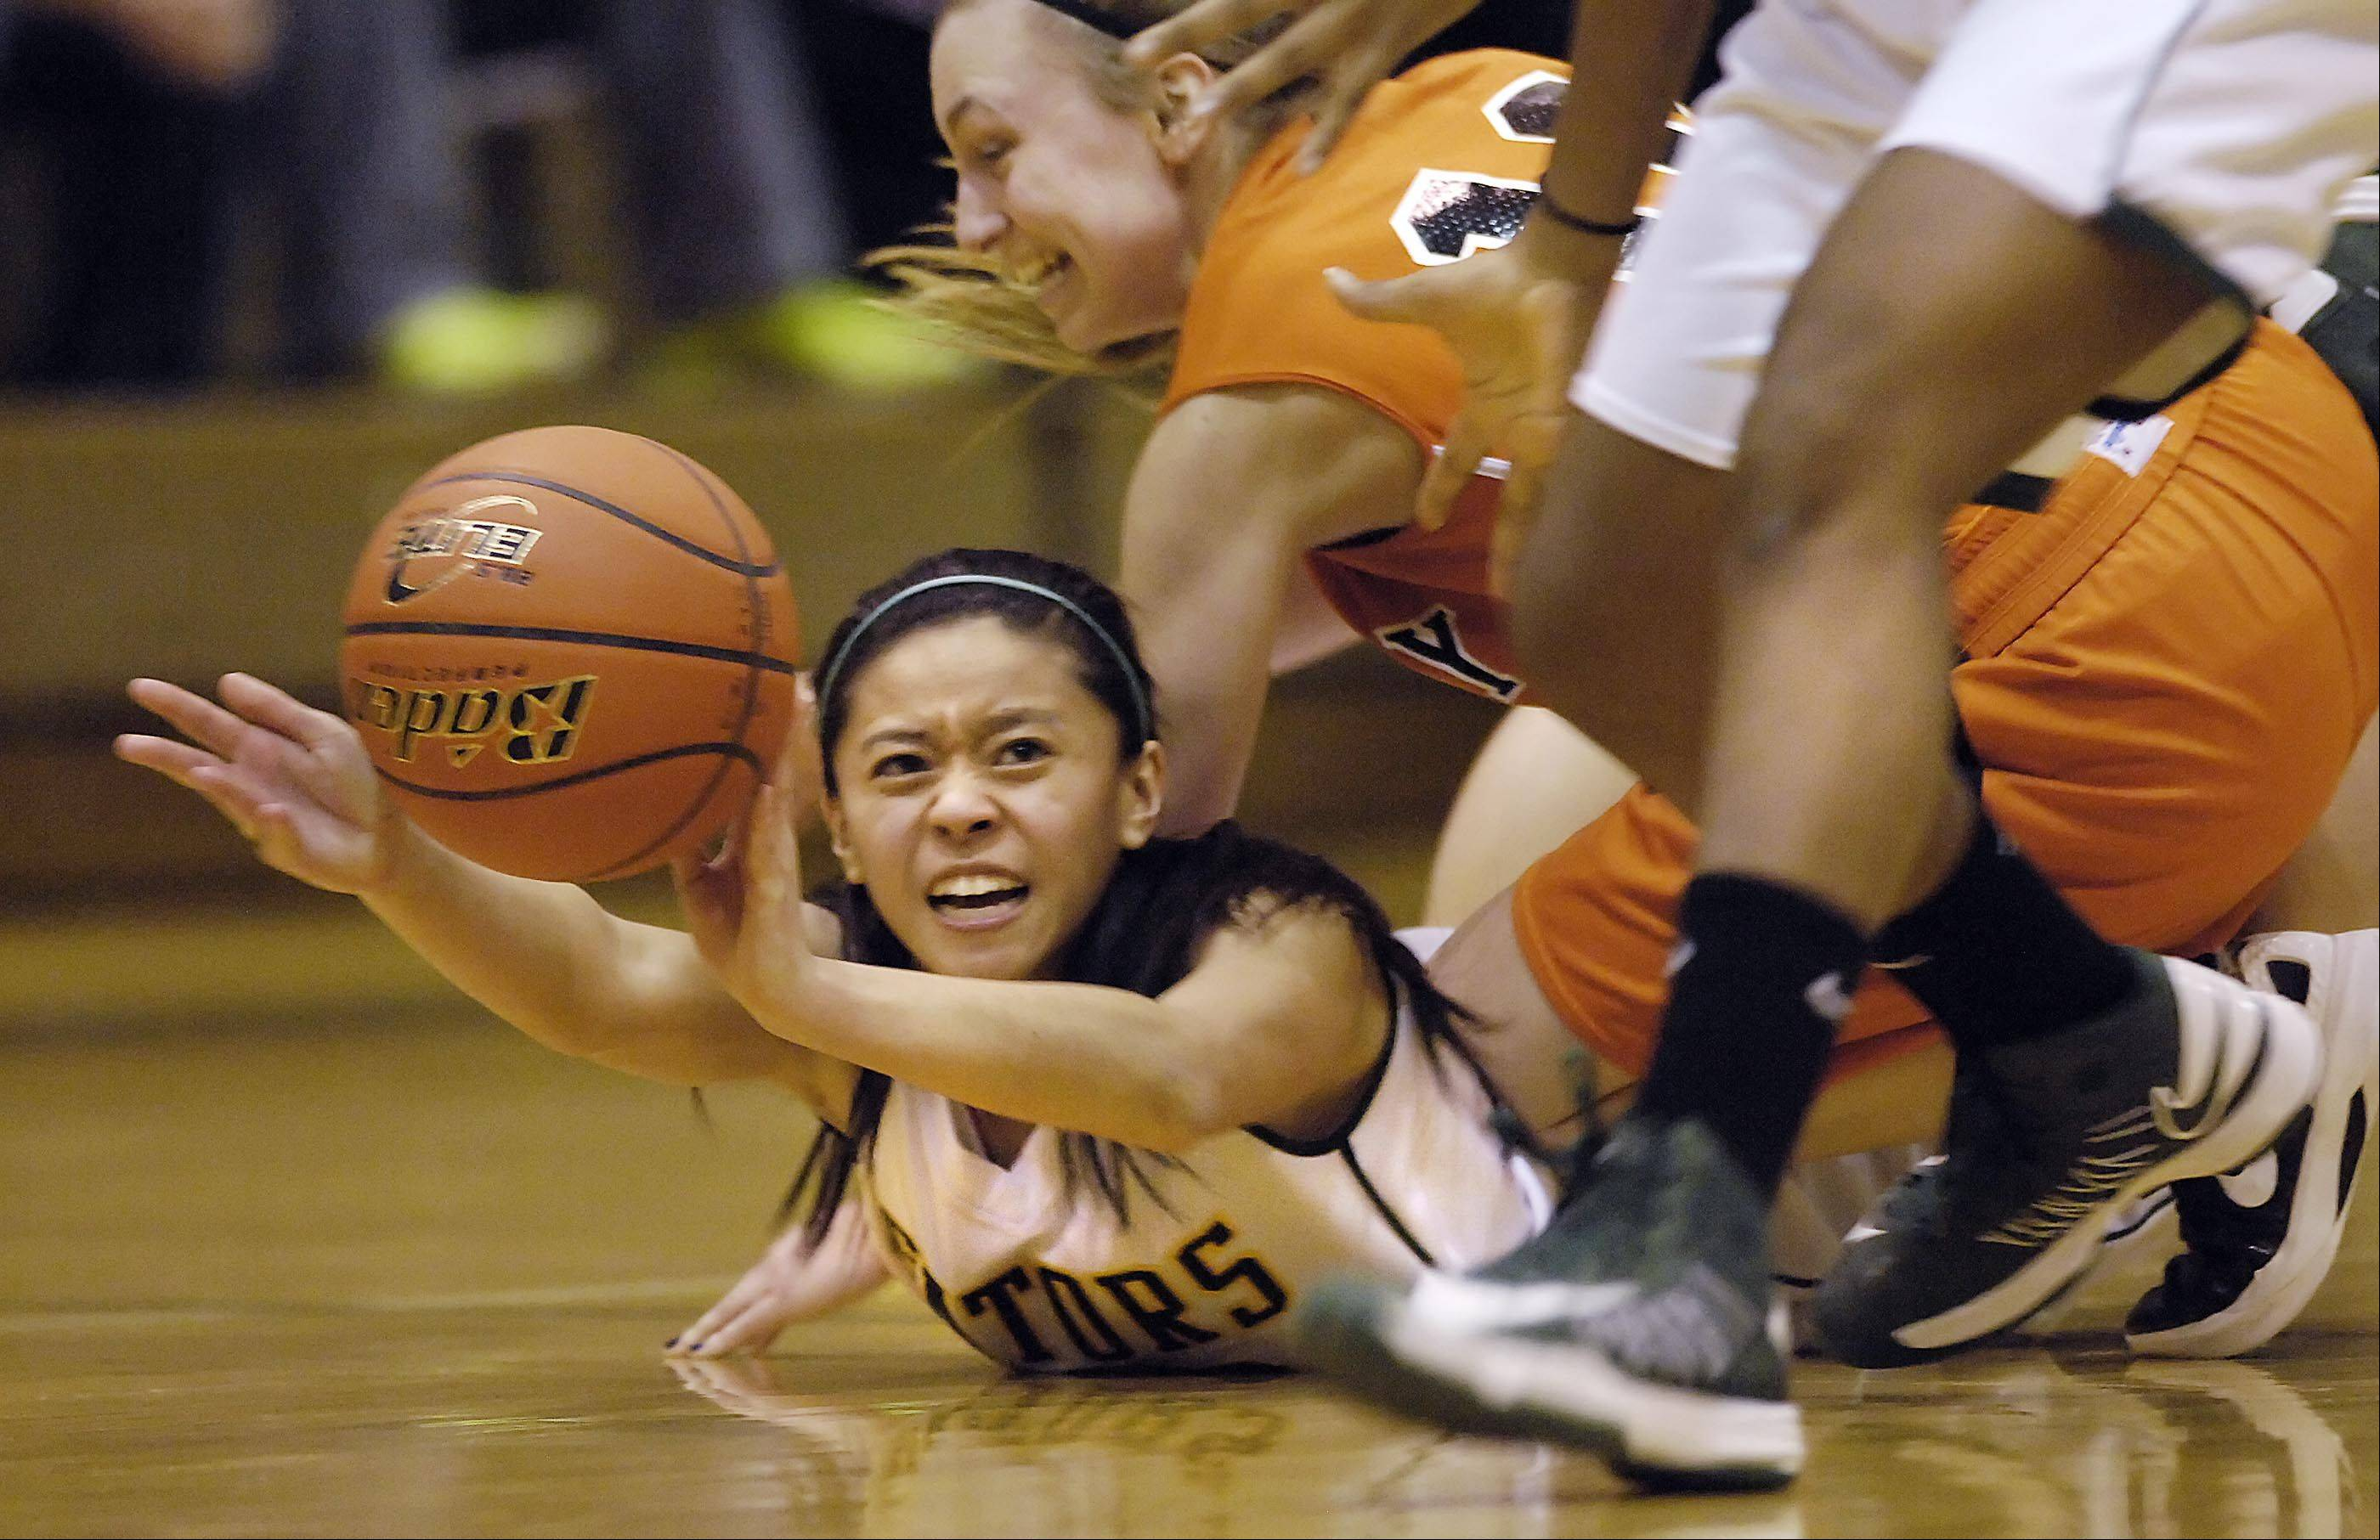 Crystal Lake South's Gaby De Jesus passes to teammate Kianna Clark as McHenry's Laura D'Angelo falls on her back.